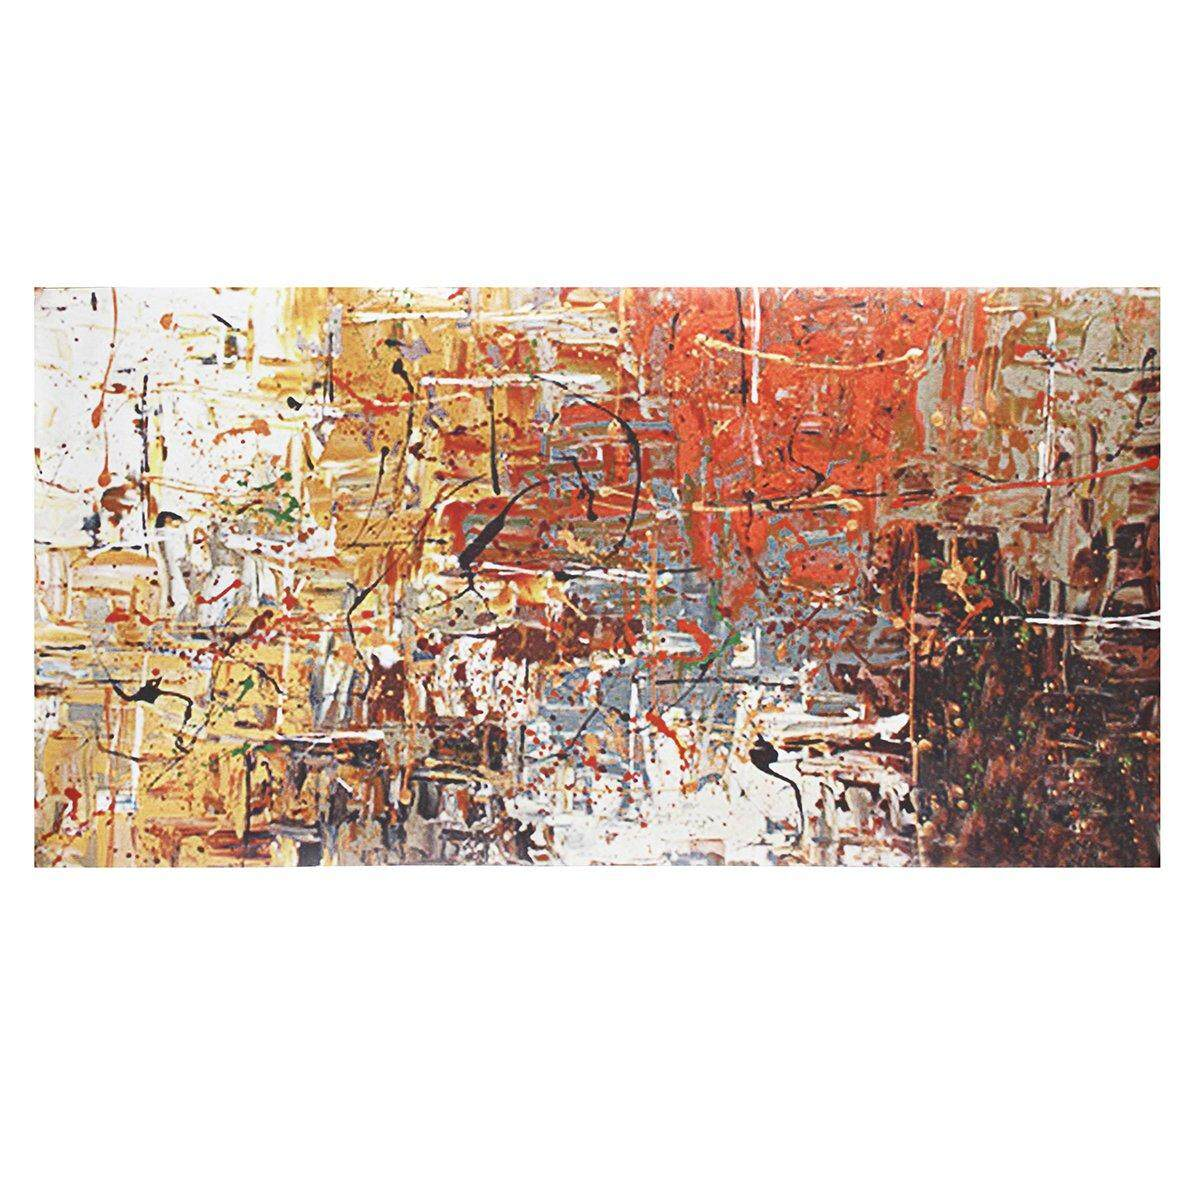 GUDI- Abstract Large Hand Drawing Modern Painting Home Decor Canvas Art Wall # 75*150cm - intl